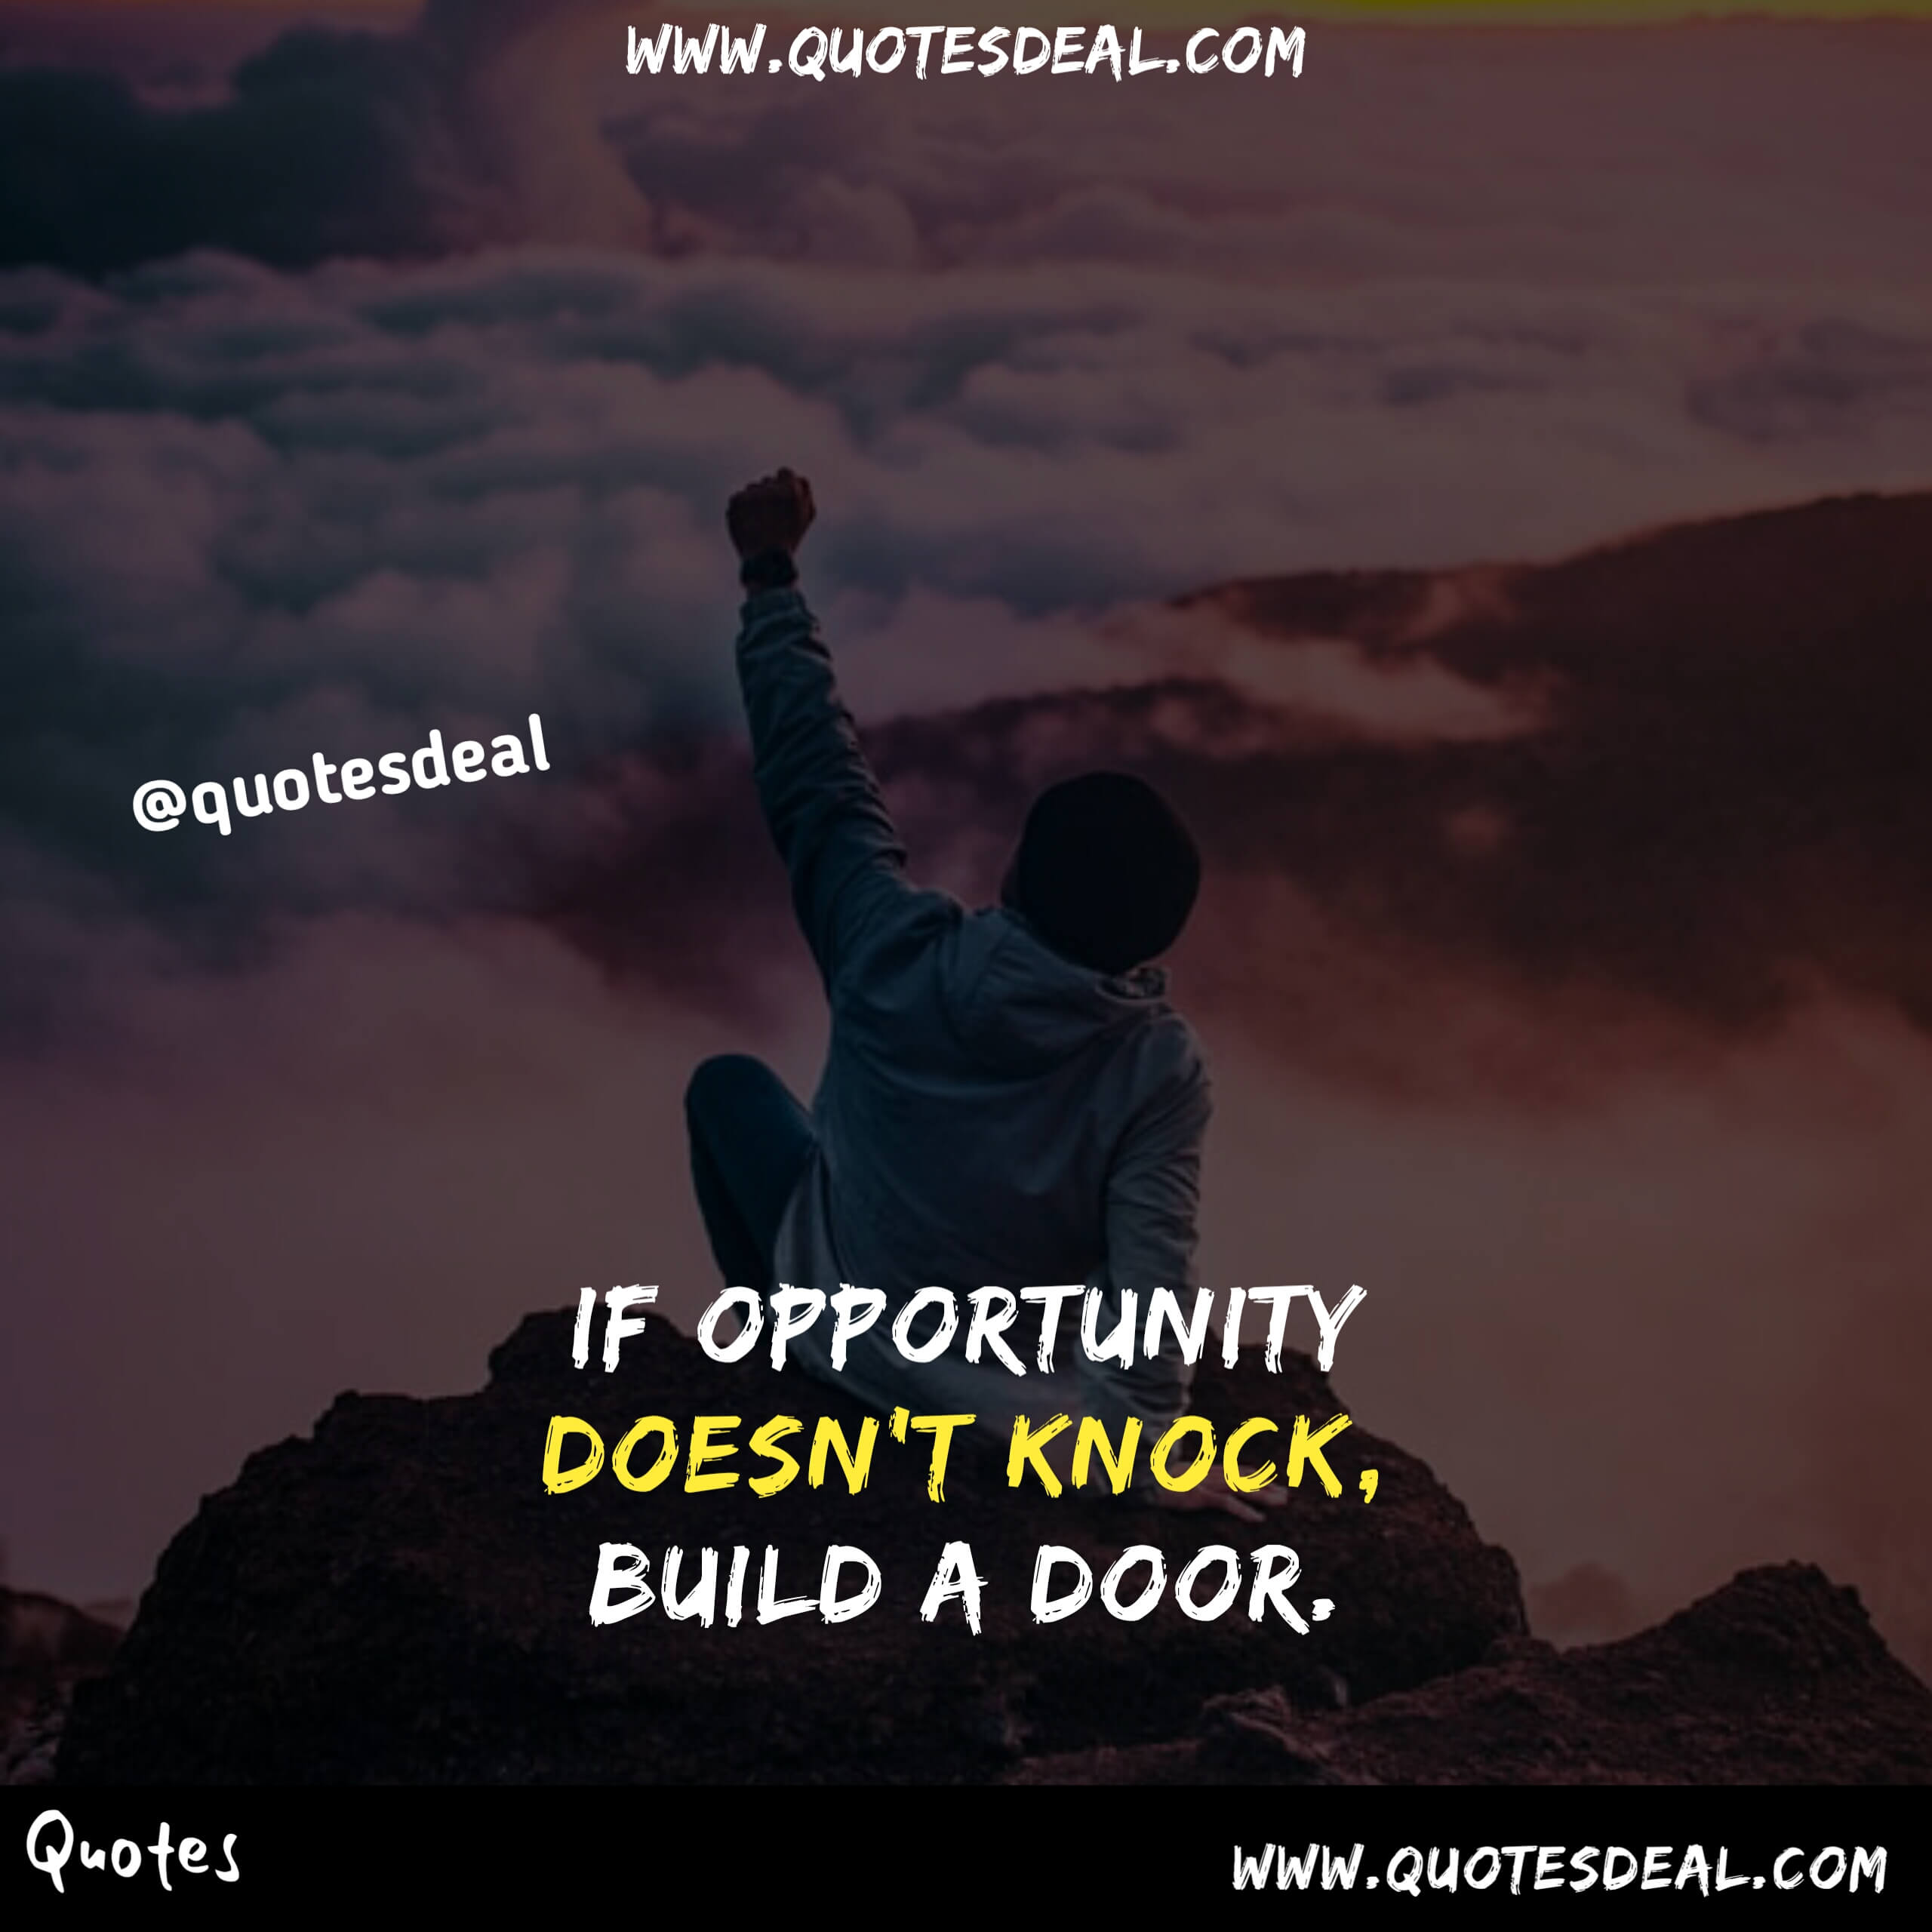 If opportunity